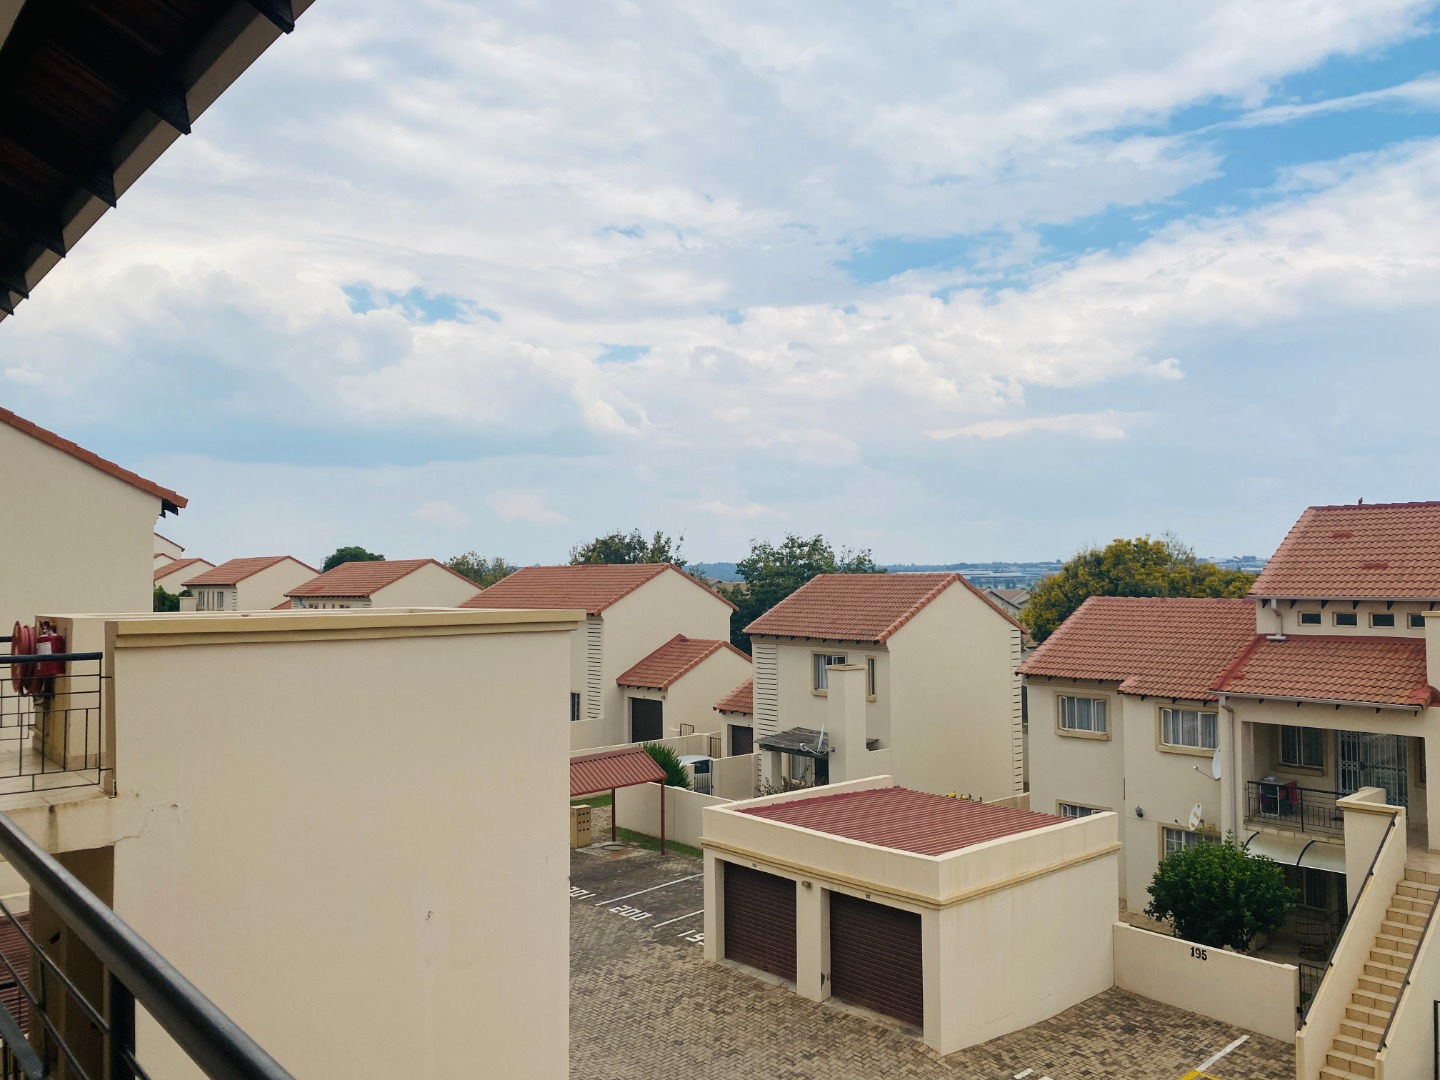 2 Bedroom Apartment / Flat To Rent in Country View